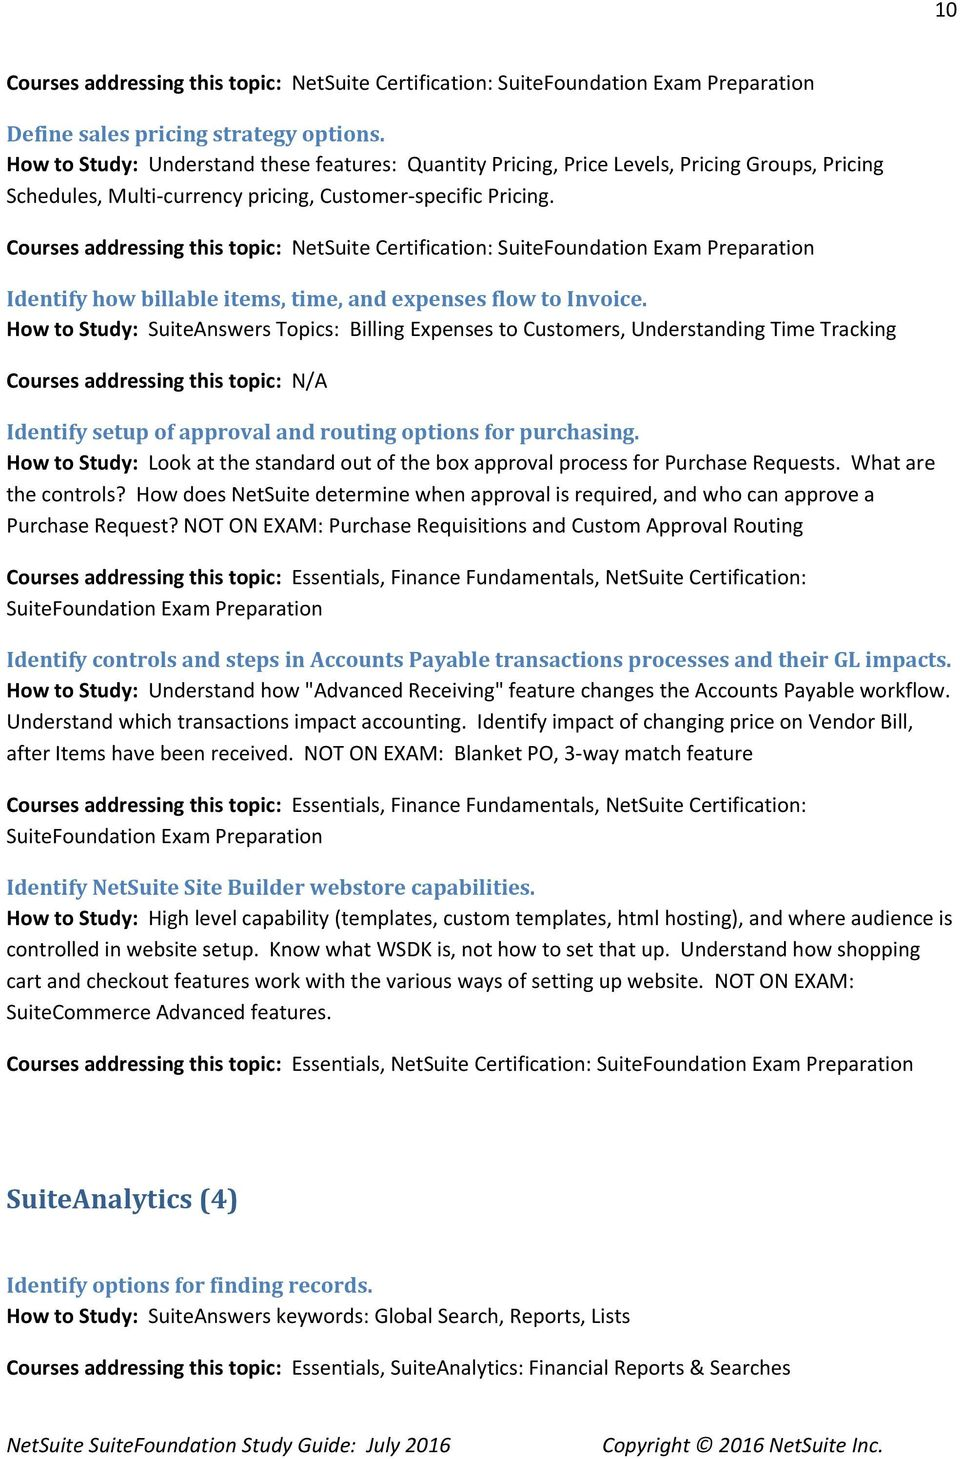 Netsuite Suitefoundation Study Guide July Pdf